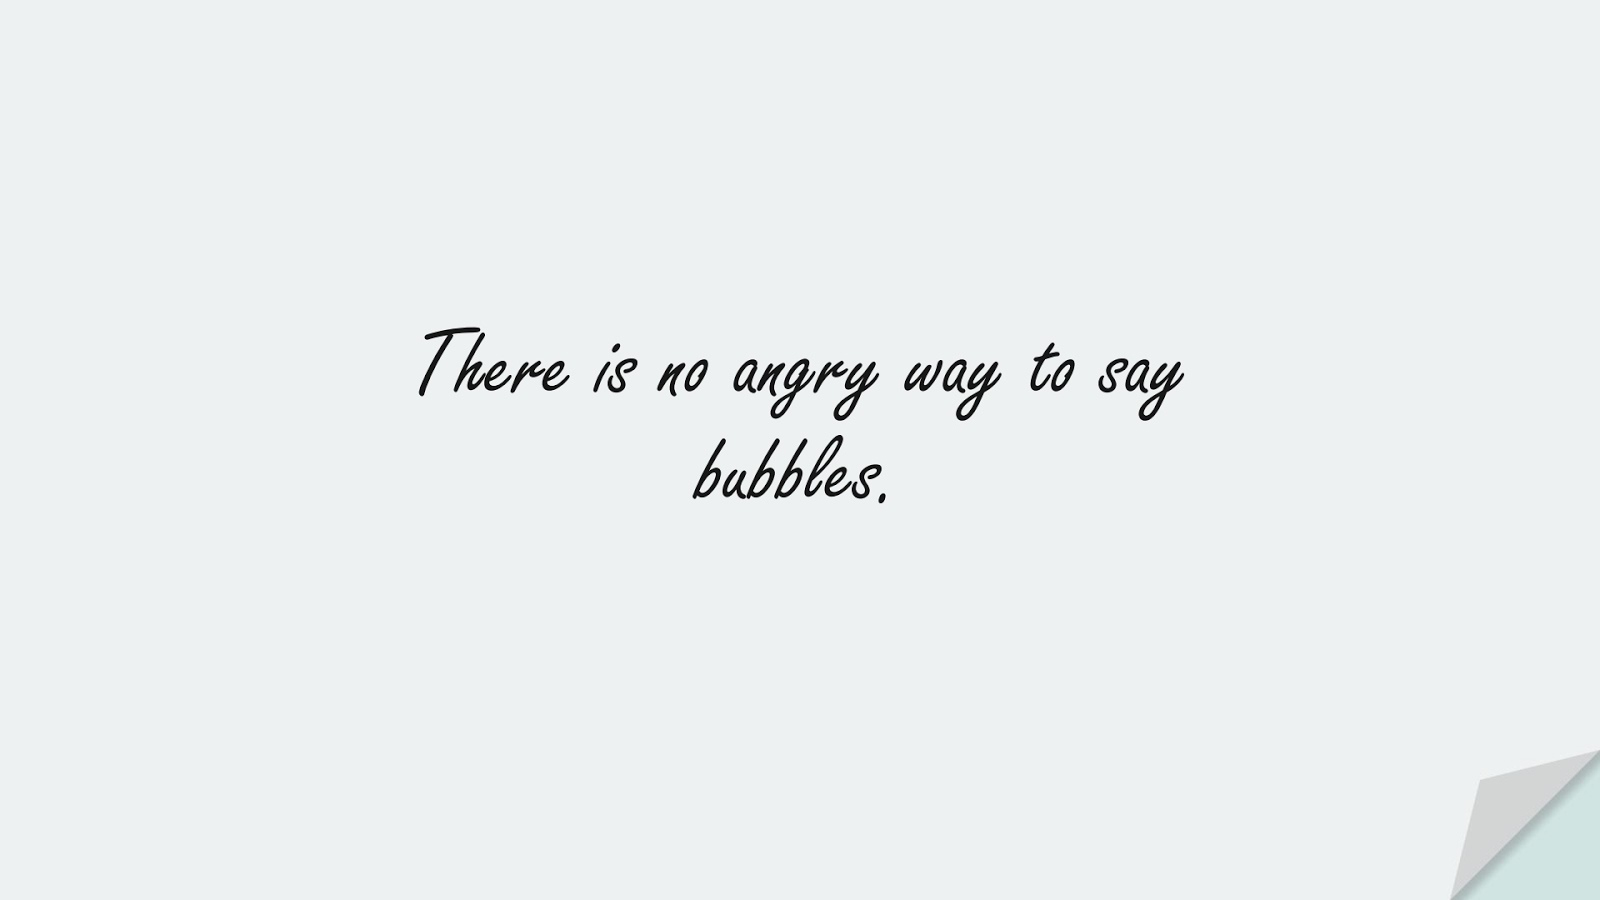 There is no angry way to say bubbles.FALSE